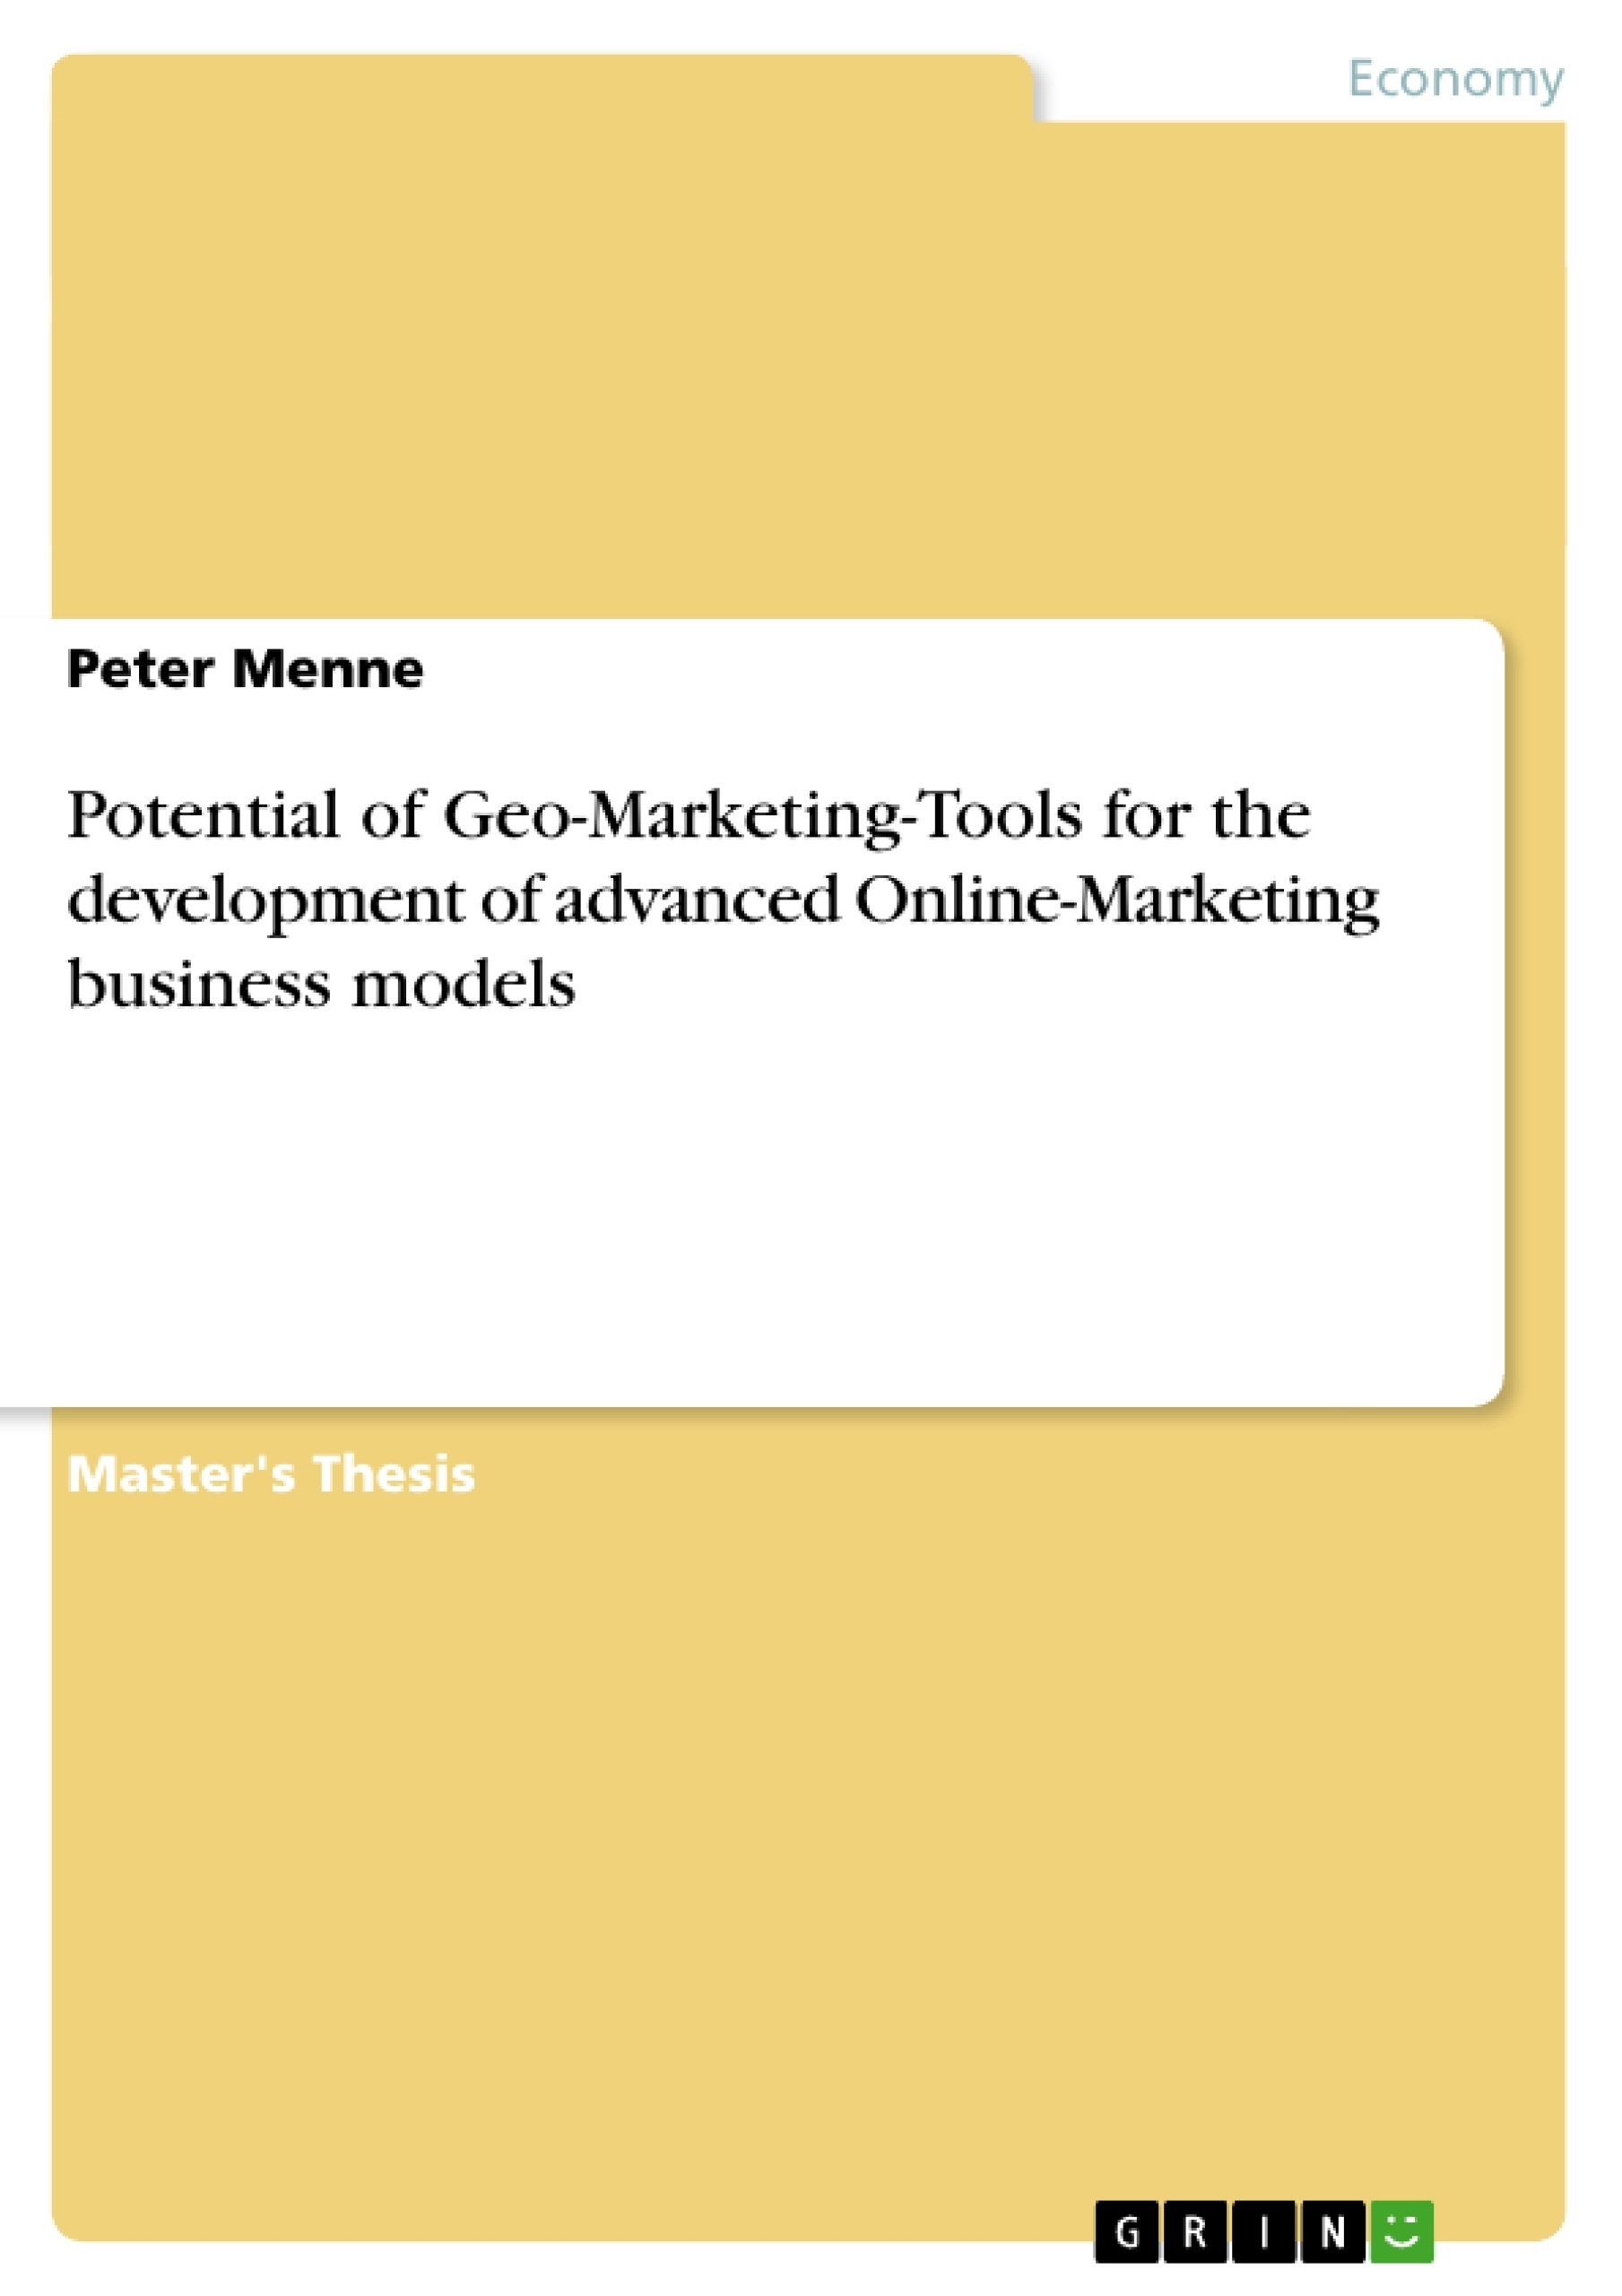 Dialogue marketing master thesis